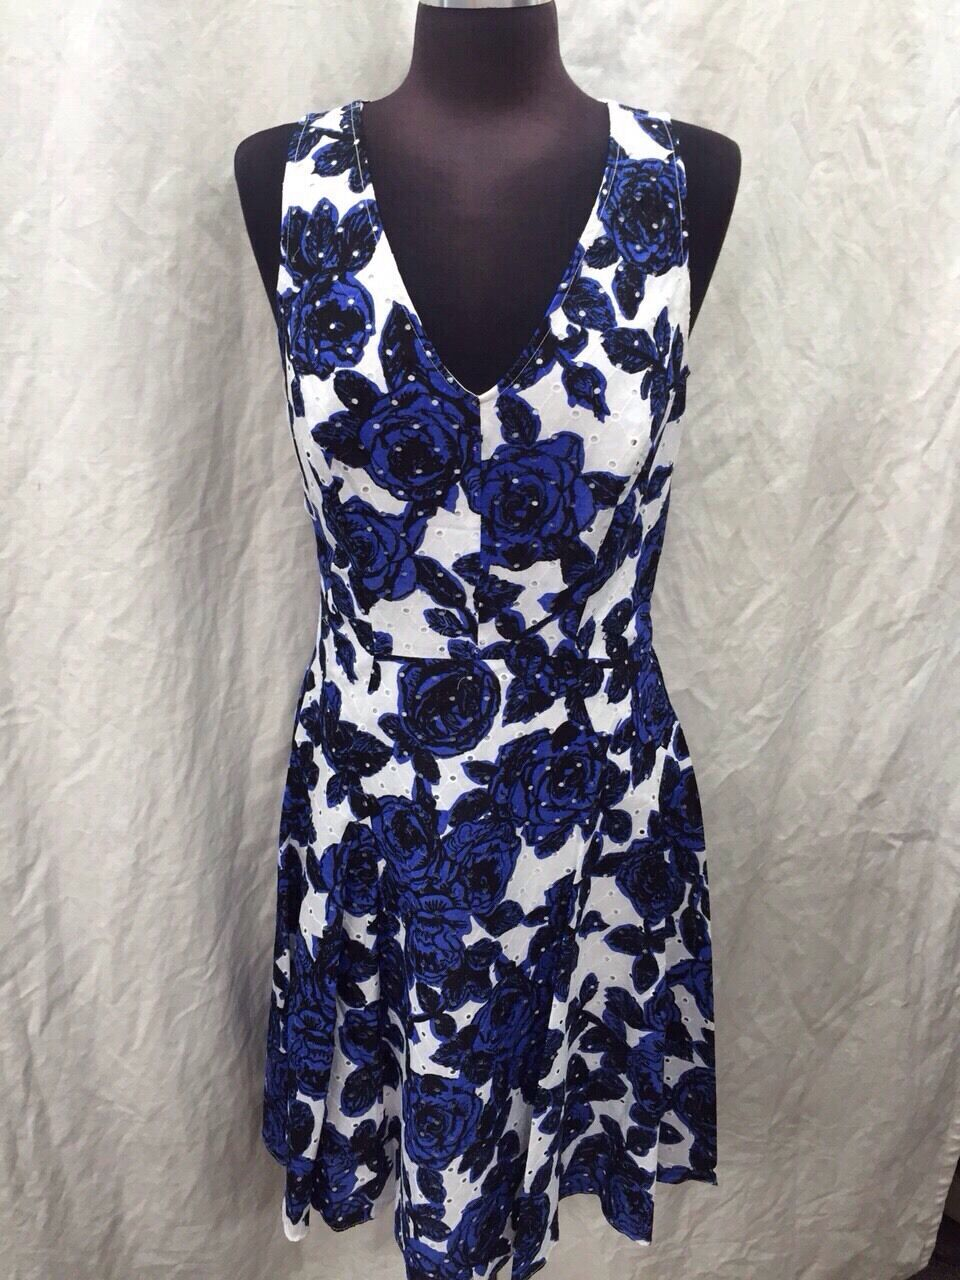 ADRIANNA PAPELL DRESS NEW WITH TAG RETAIL  SIZE 4 COTTON SMOKE FREE MACYS